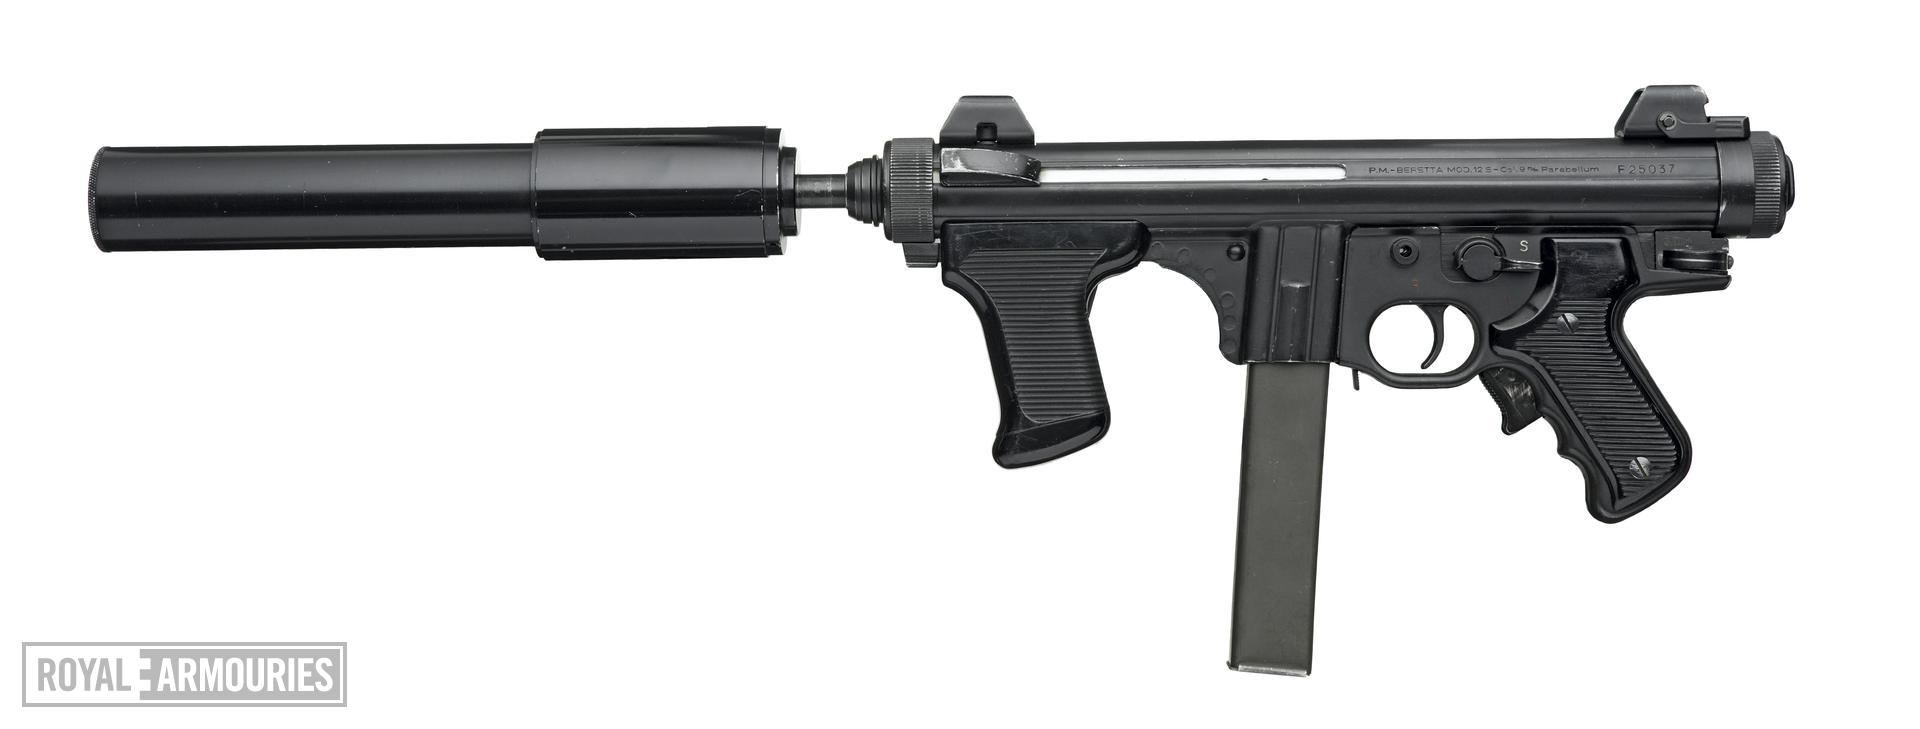 Centrefire automatic submachine gun - Beretta Model 12S